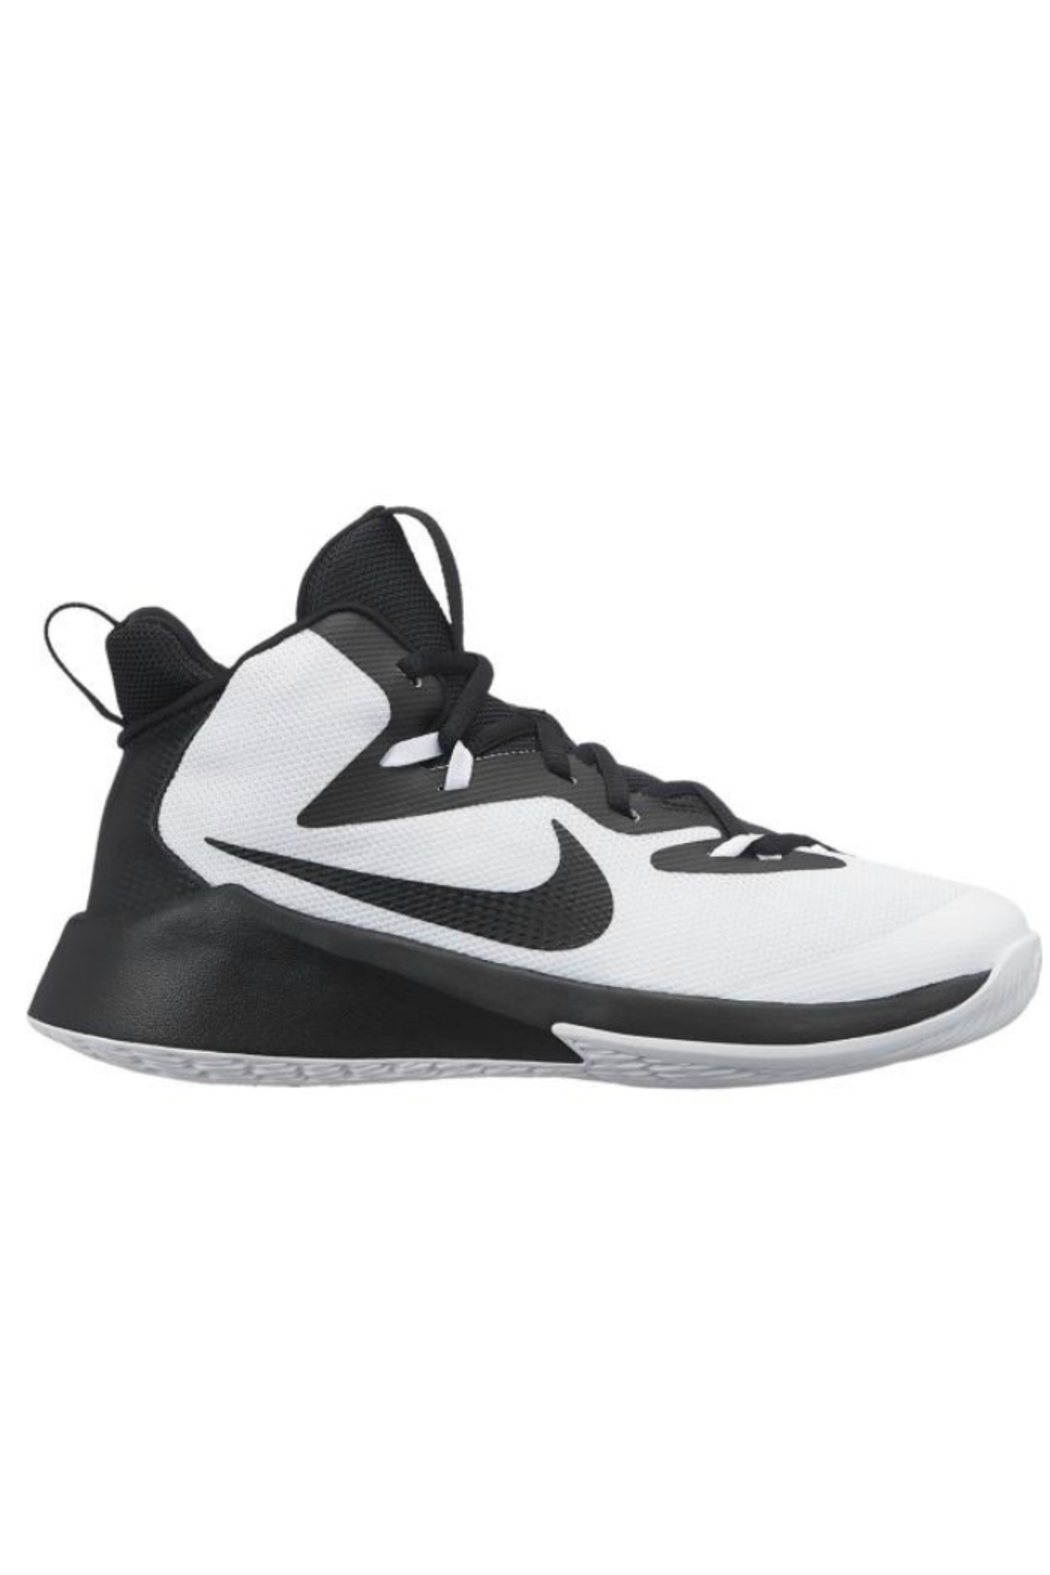 big sale 1f9c8 b2d58 Nike NIKE FUTURE COURT from New Jersey by Suburban Shoes ...